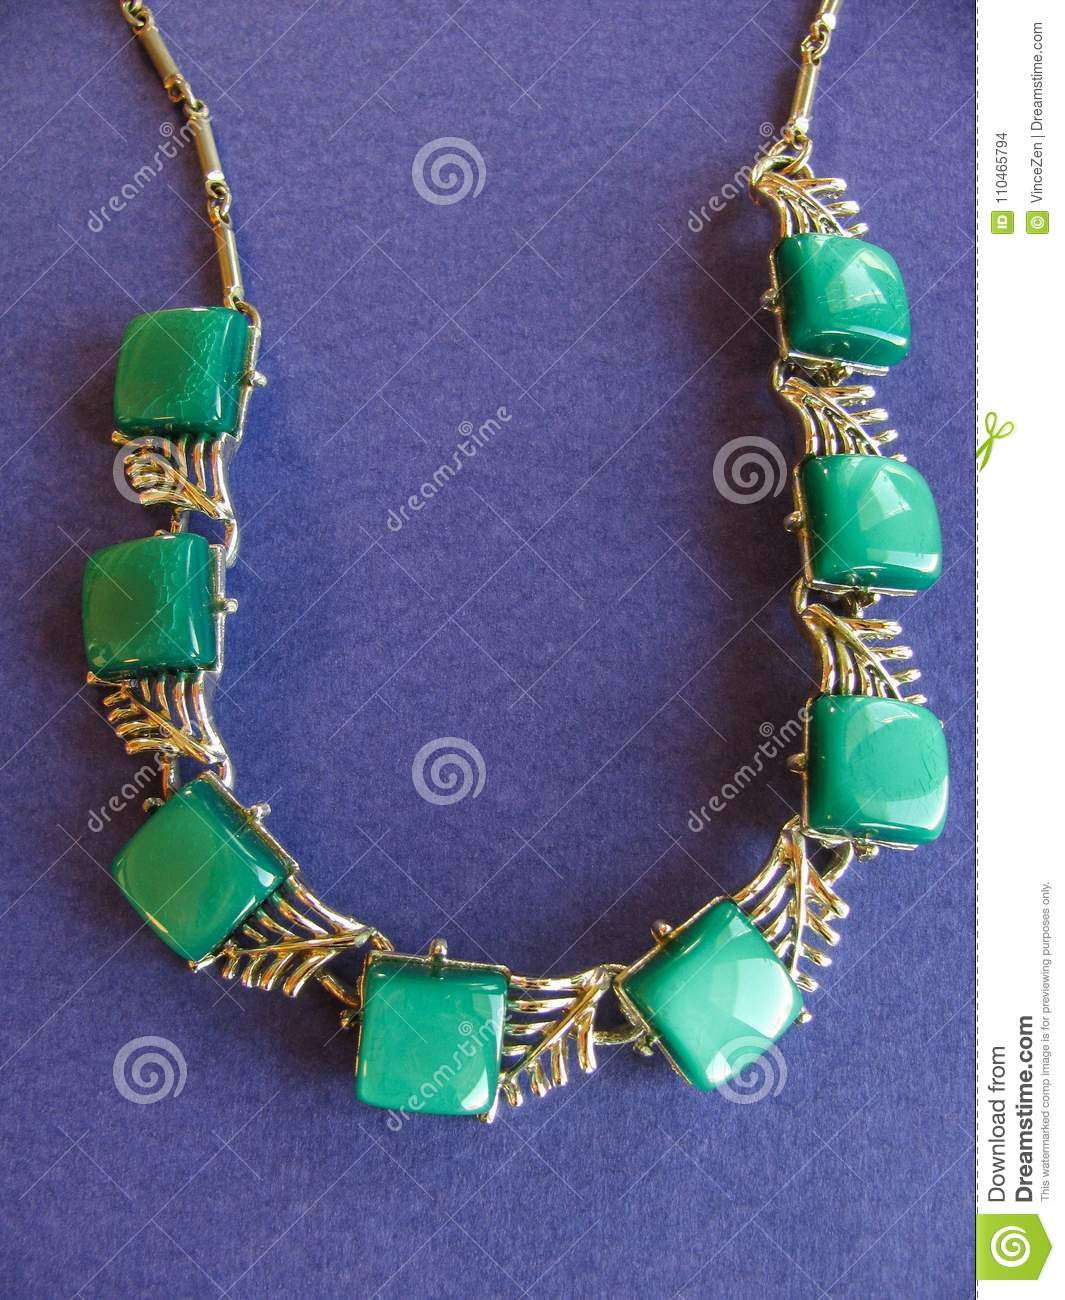 Emerald Green Vintage Necklace Of Lucite Squares Linked By A Gold Tone Chain On Rich Purple Background